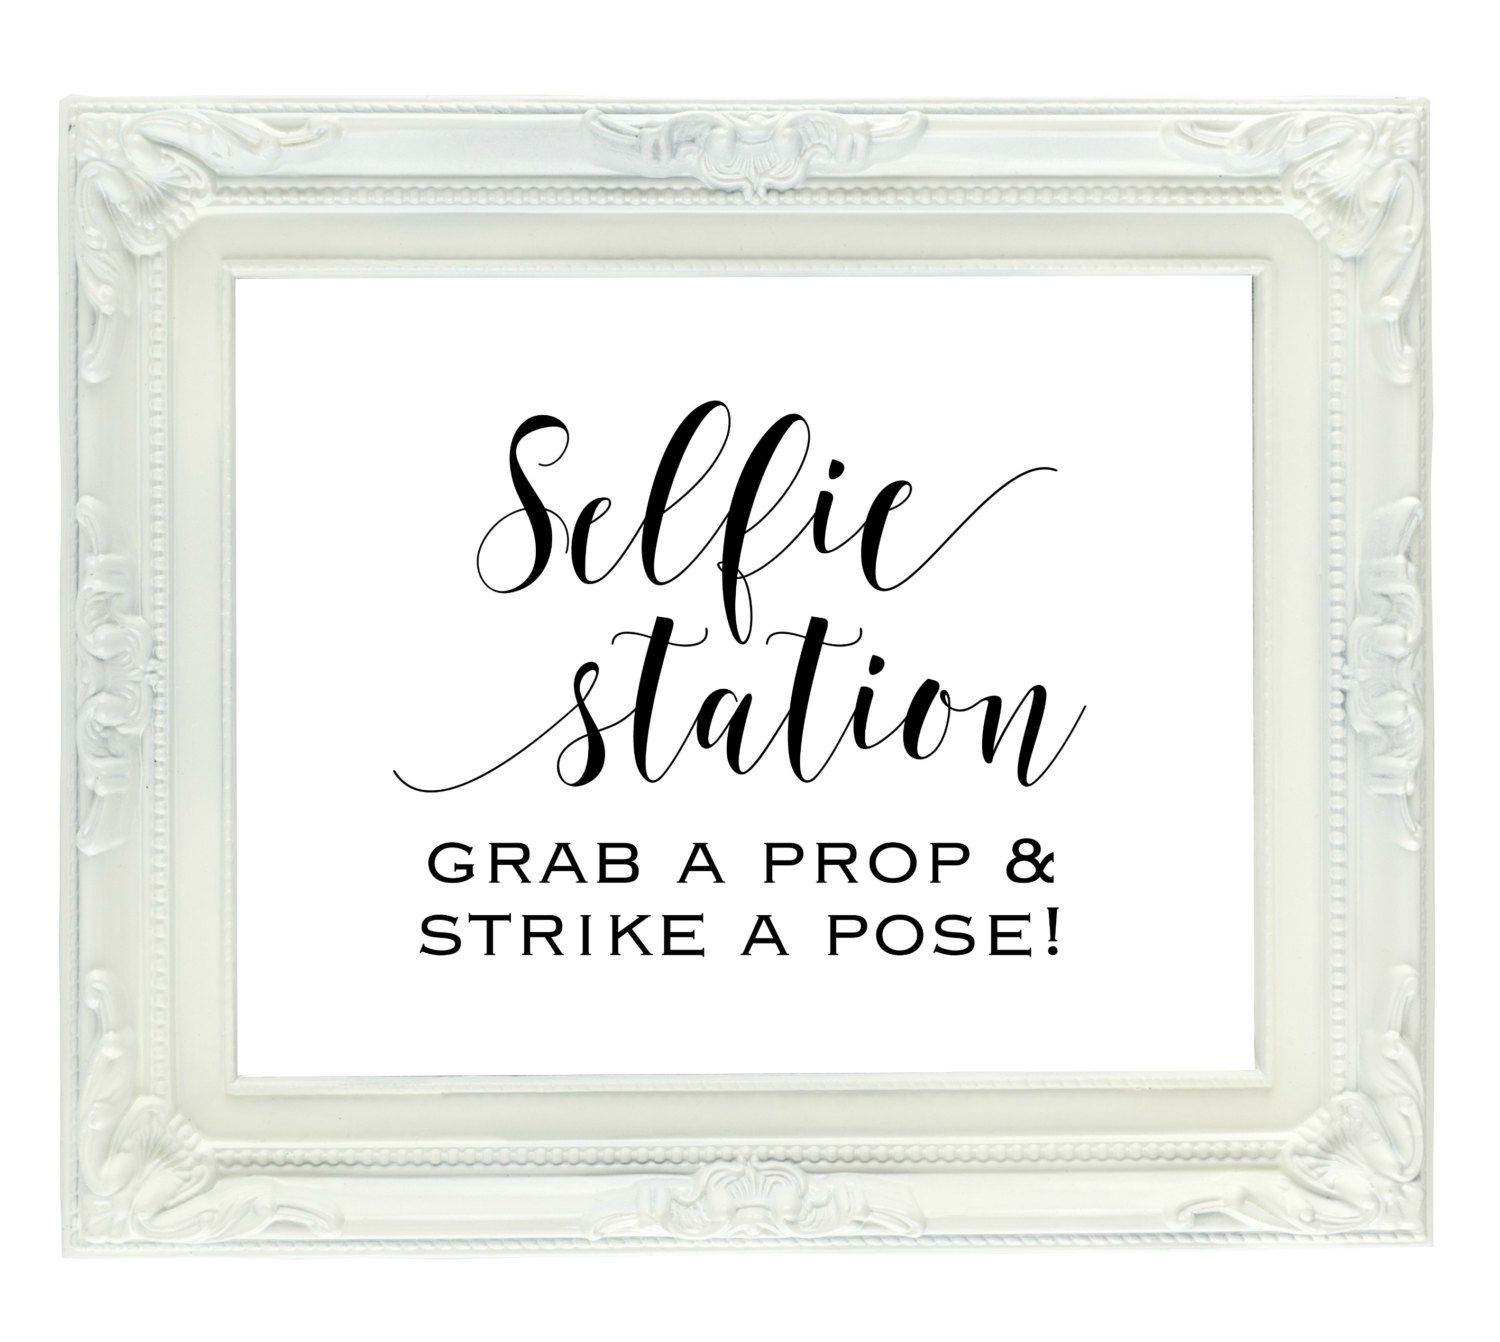 Selfie Station Sign Grab A Prop Strike Pose Printable Wedding